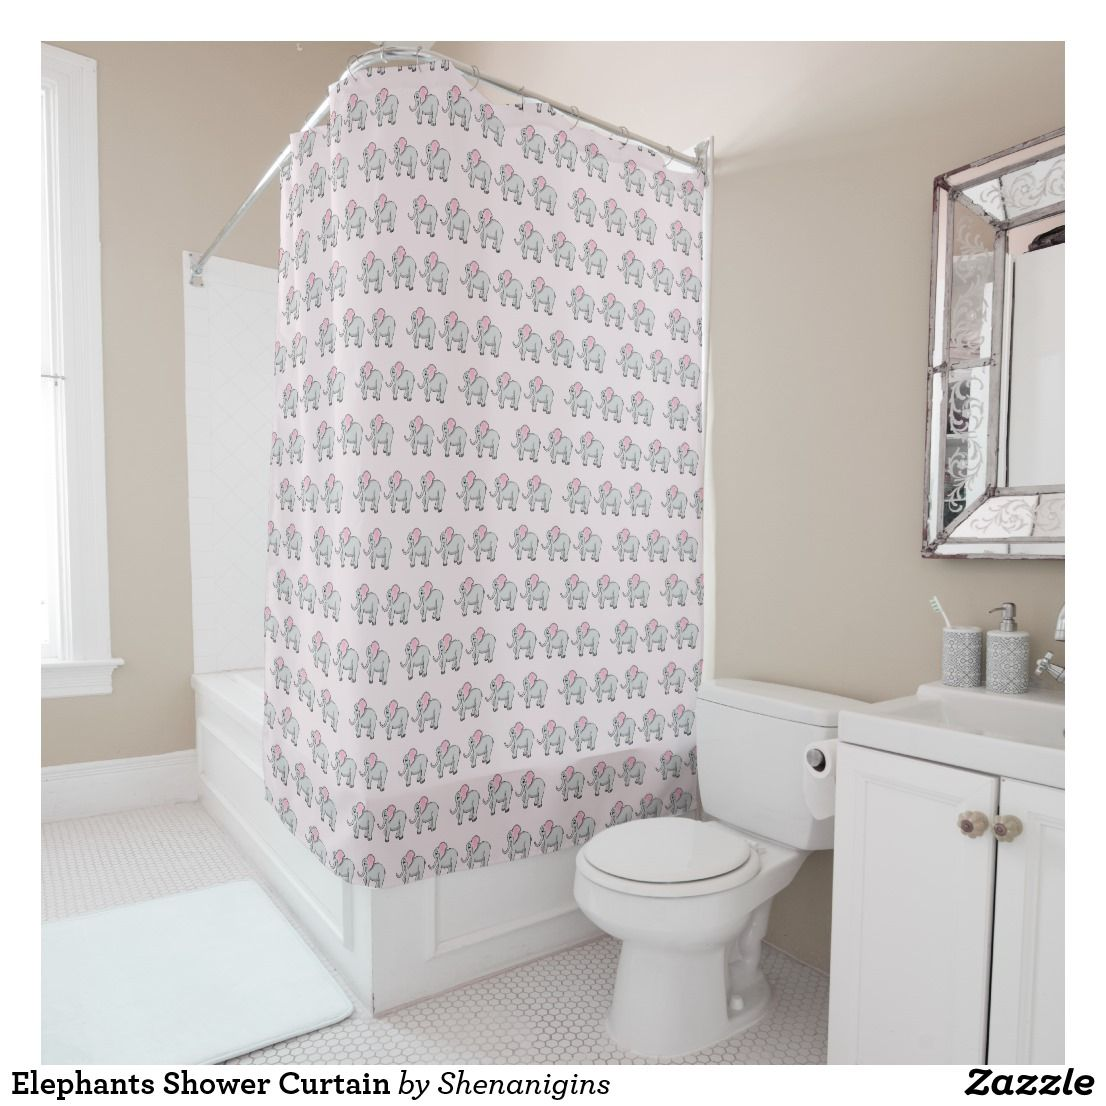 Elephants Shower Curtain Cute With Pink Ears Make Up This Adorable Background Color Can Be Changed To Match Any Bathroom Dcor